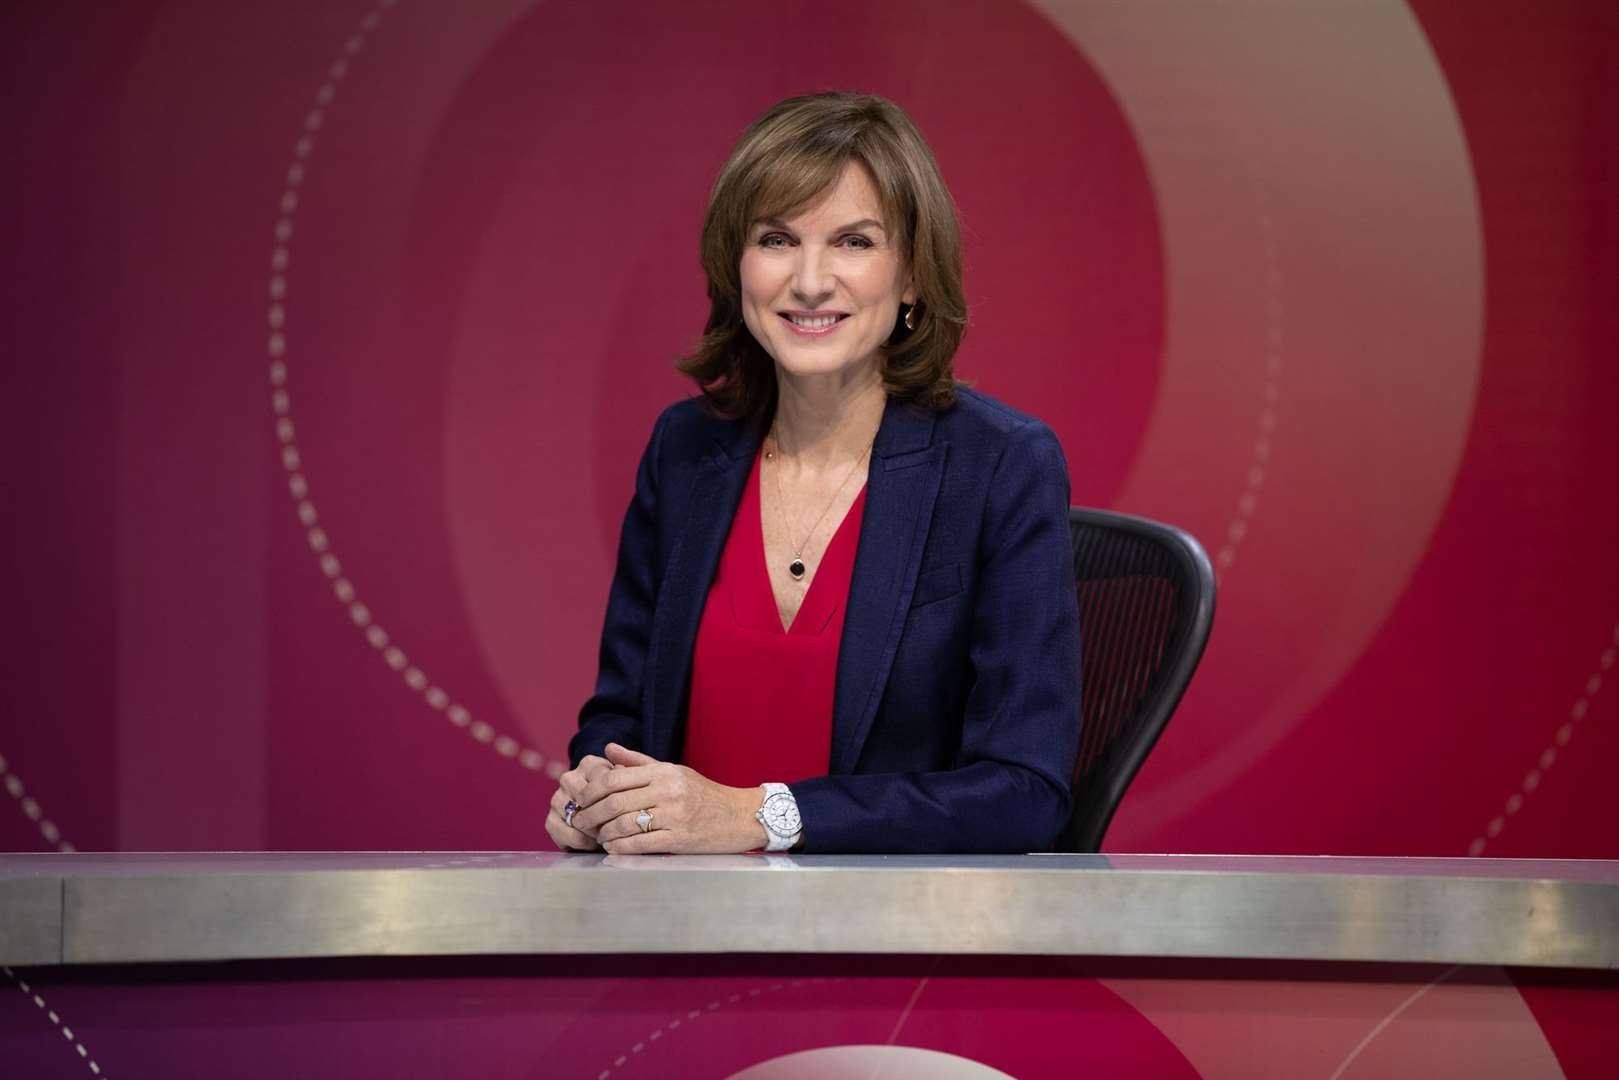 Fiona Bruce hosted the lively Question Time from Thetford - (C) BBC - Photographer: Richard Lewisohn